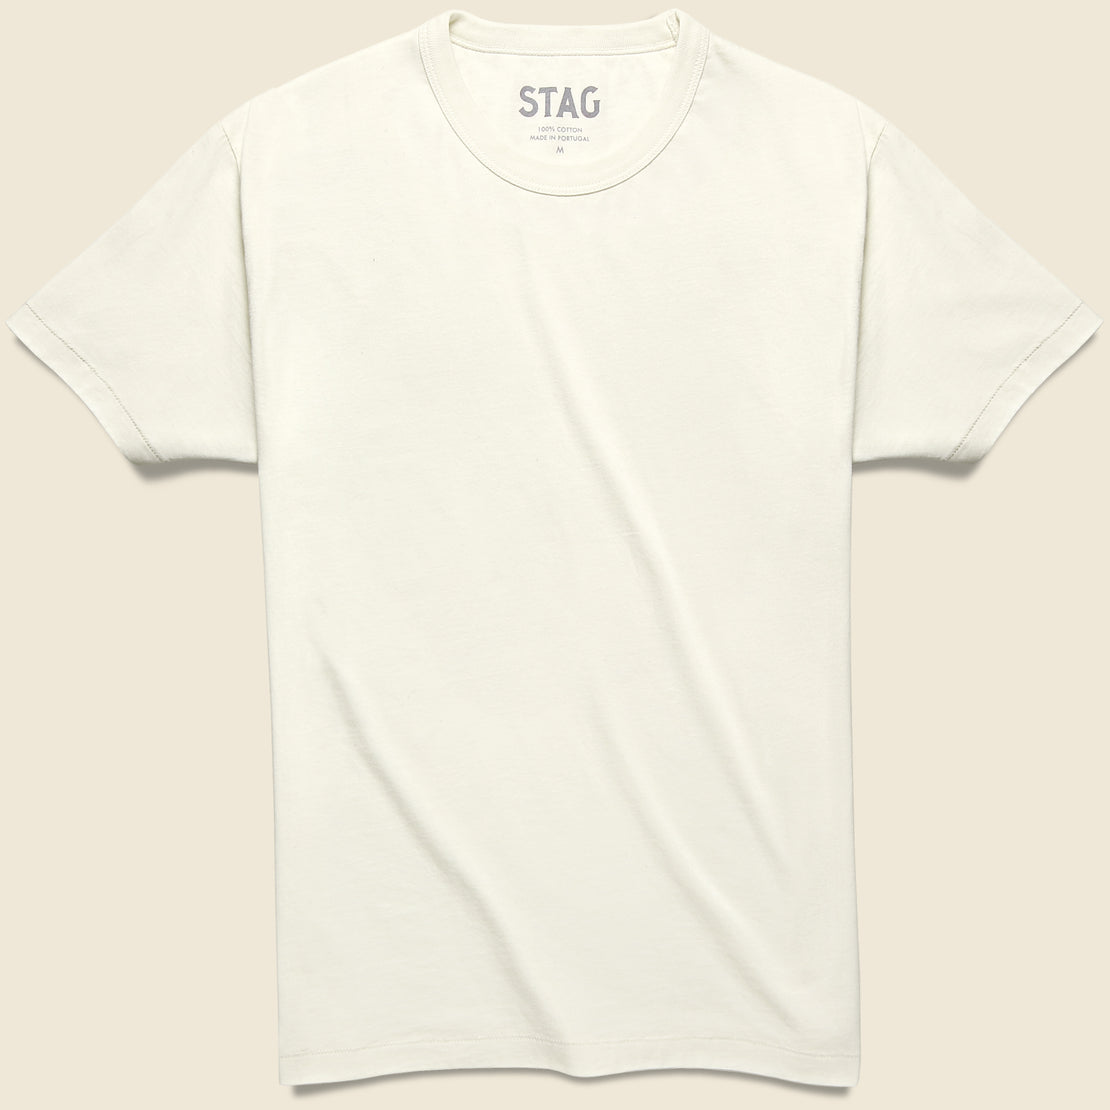 STAG STAG Tee - White